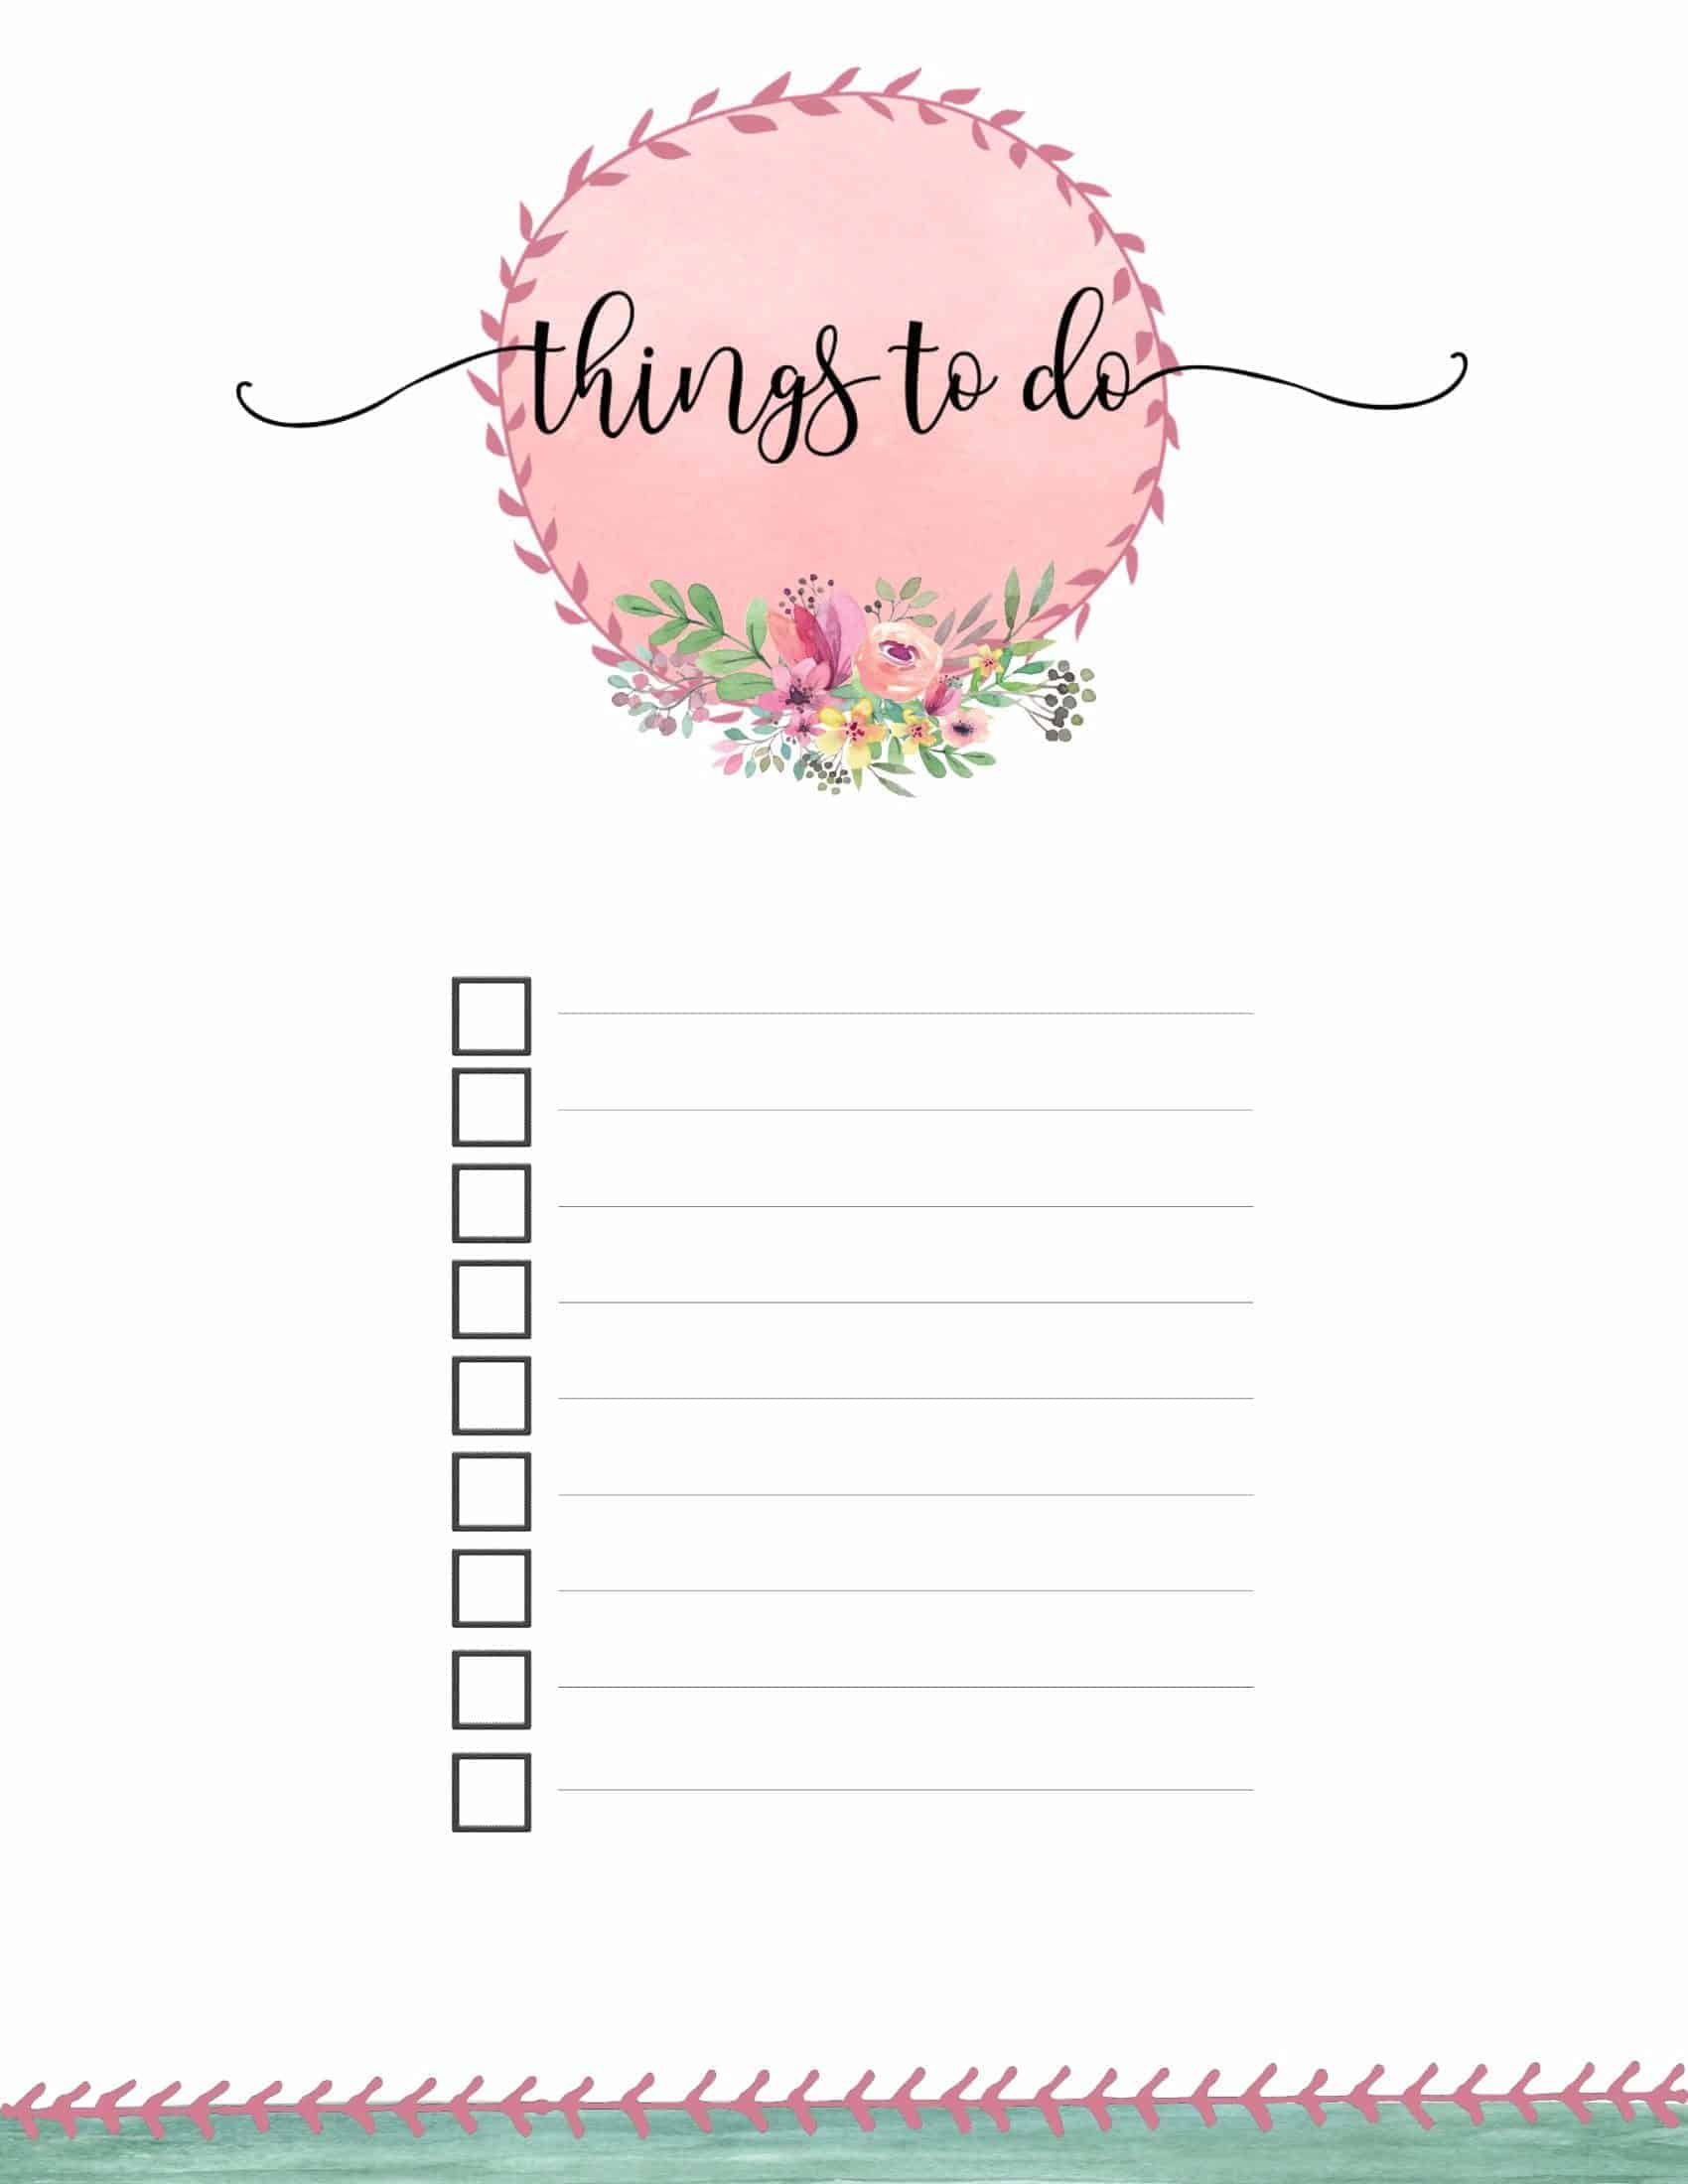 Free Printable To Do List  Print or Use Online  Access from Anywhere